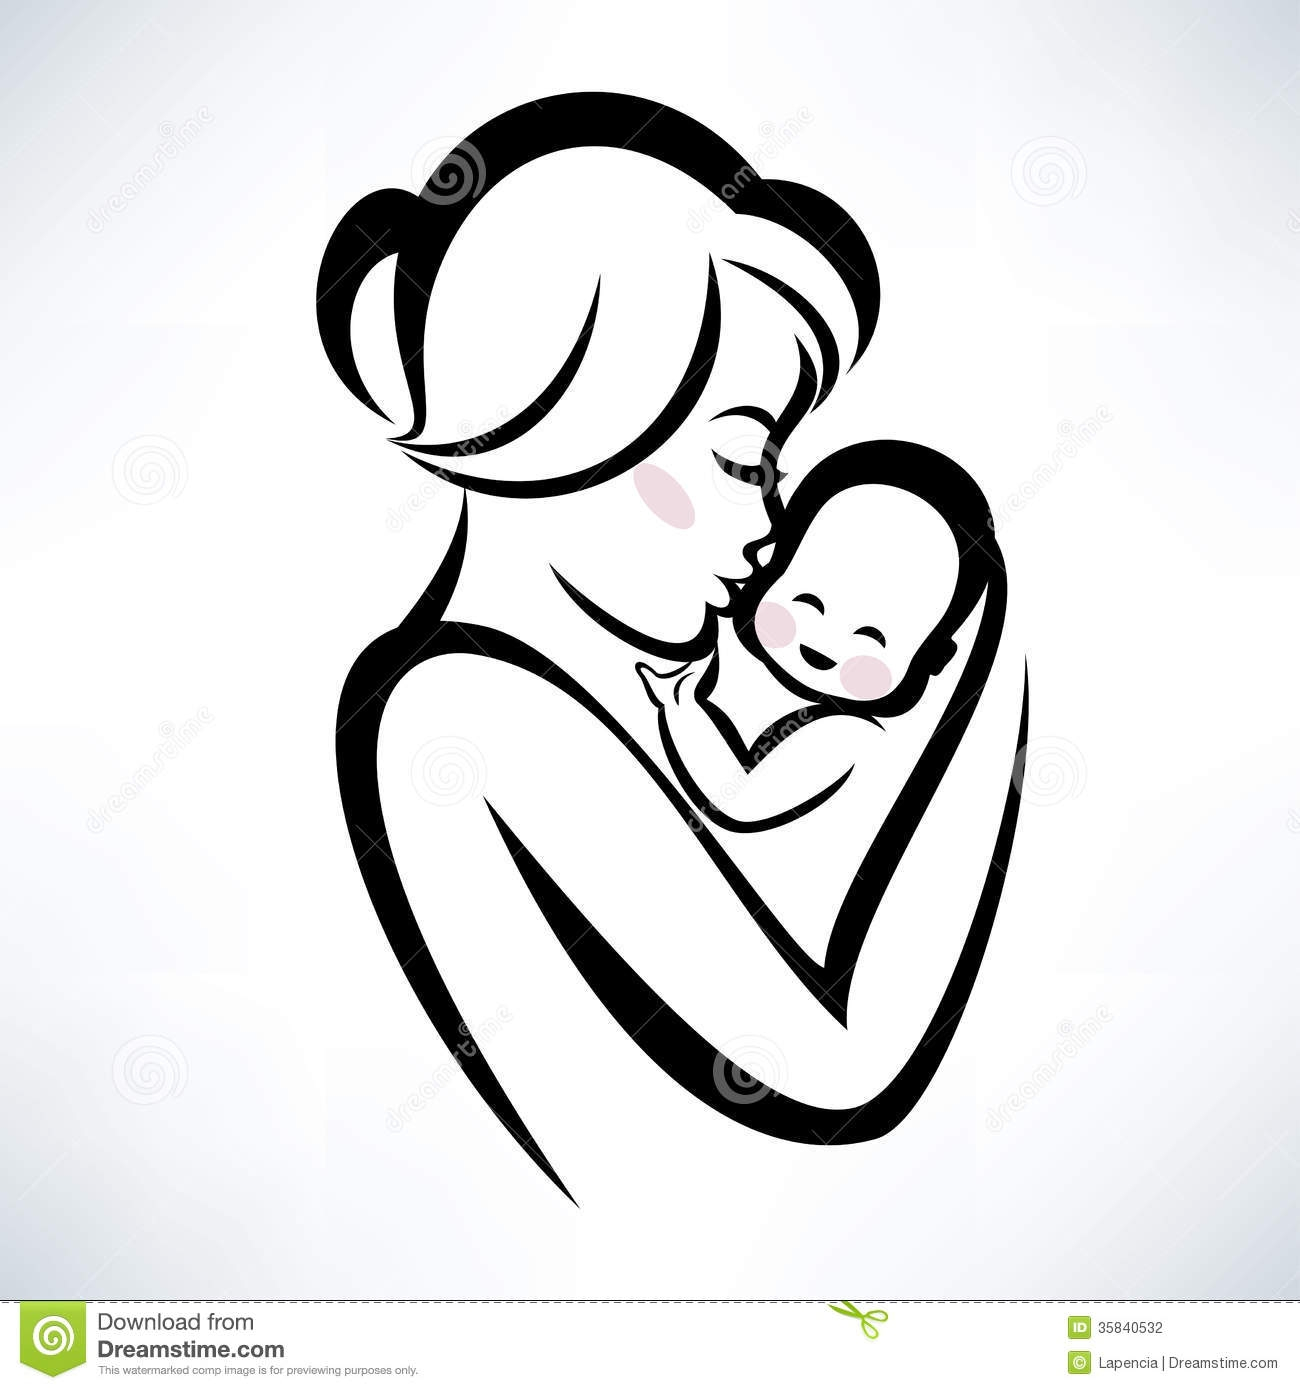 Mama mit baby clipart picture free download Mother and baby clipart - ClipartFest picture free download